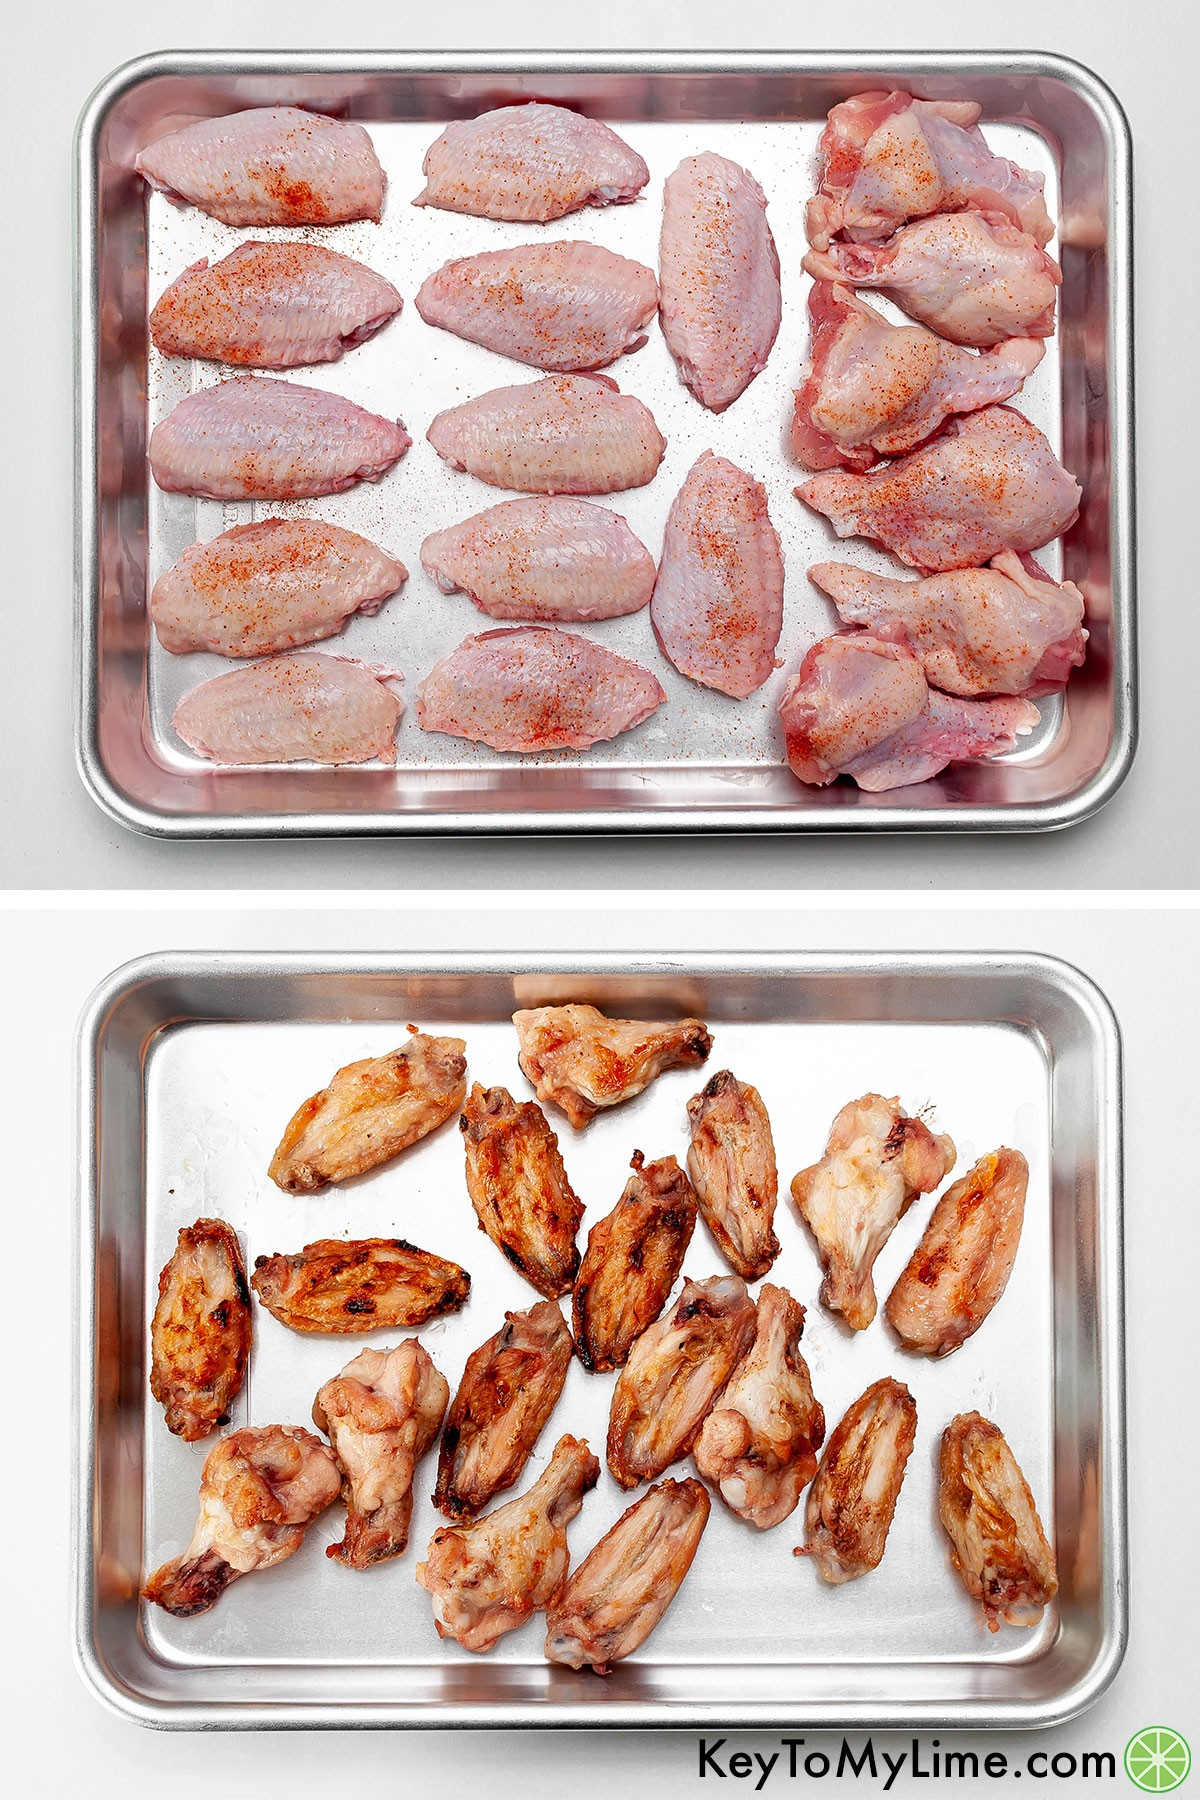 Chicken wings before and after grilling.